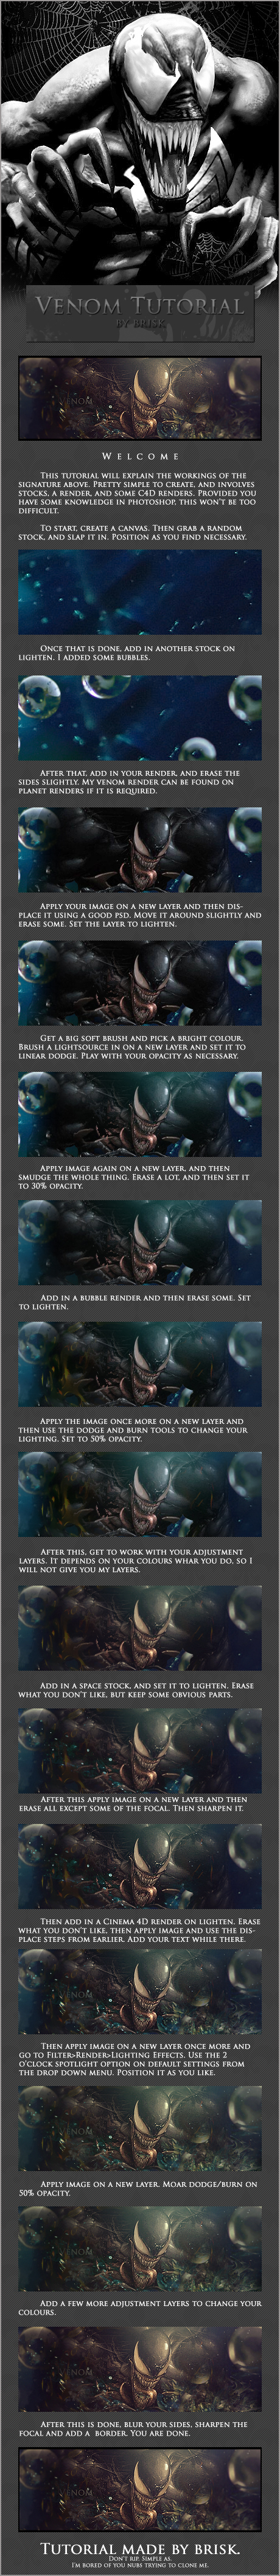 Venom Tutorial by brisktutorials